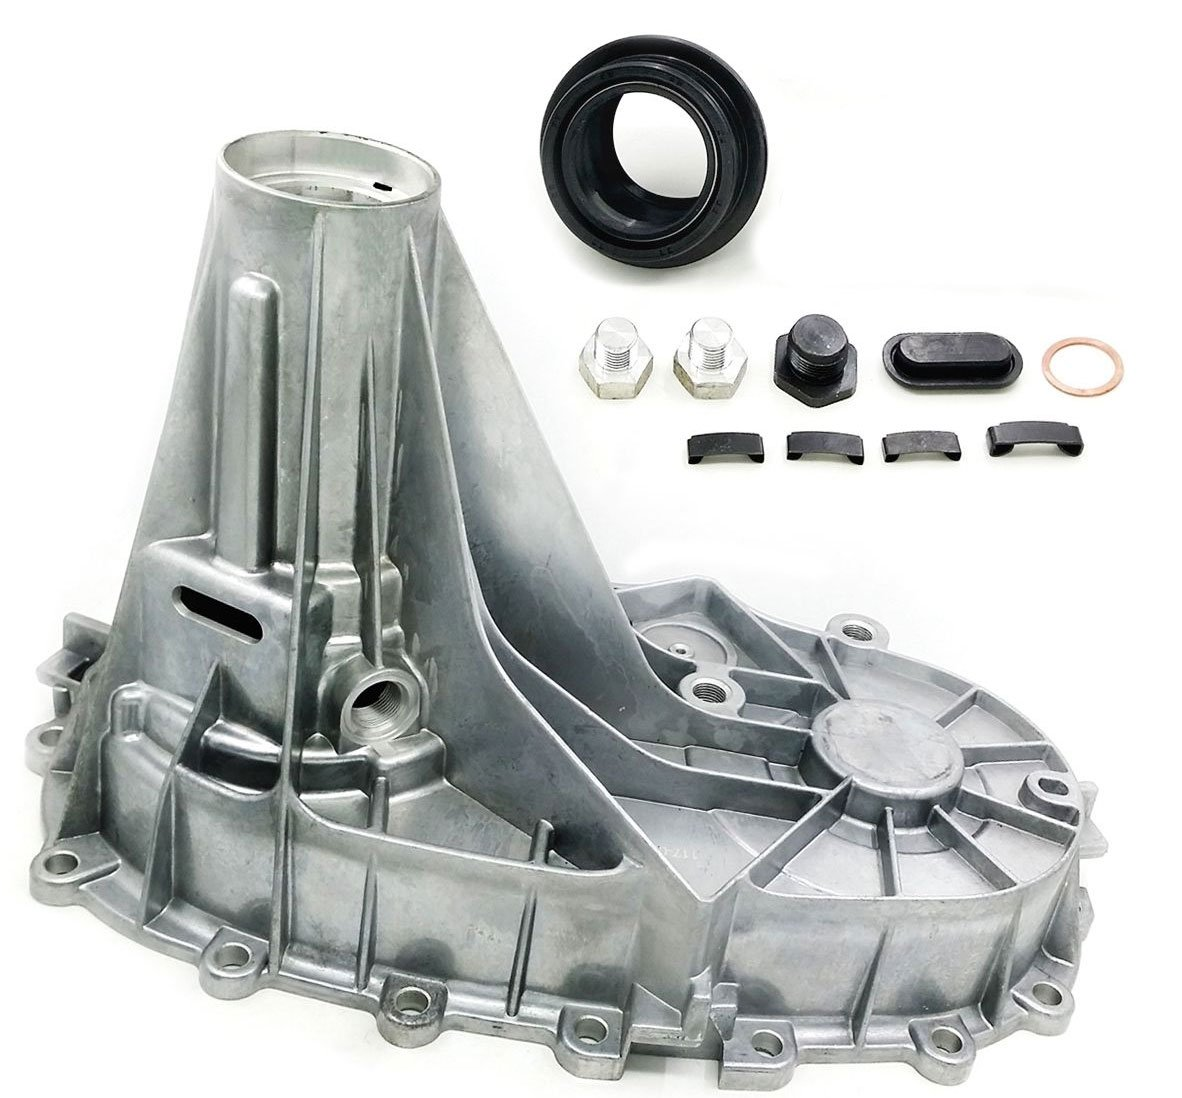 Rear Transfer Case Housing Kit w/ Rear Output/ Tail Shaft Seal For Cadillac, Chevrolet, And GMC Trucks Improved Design Eliminates Pump Rub Replaces OE#s 12473226 12474949